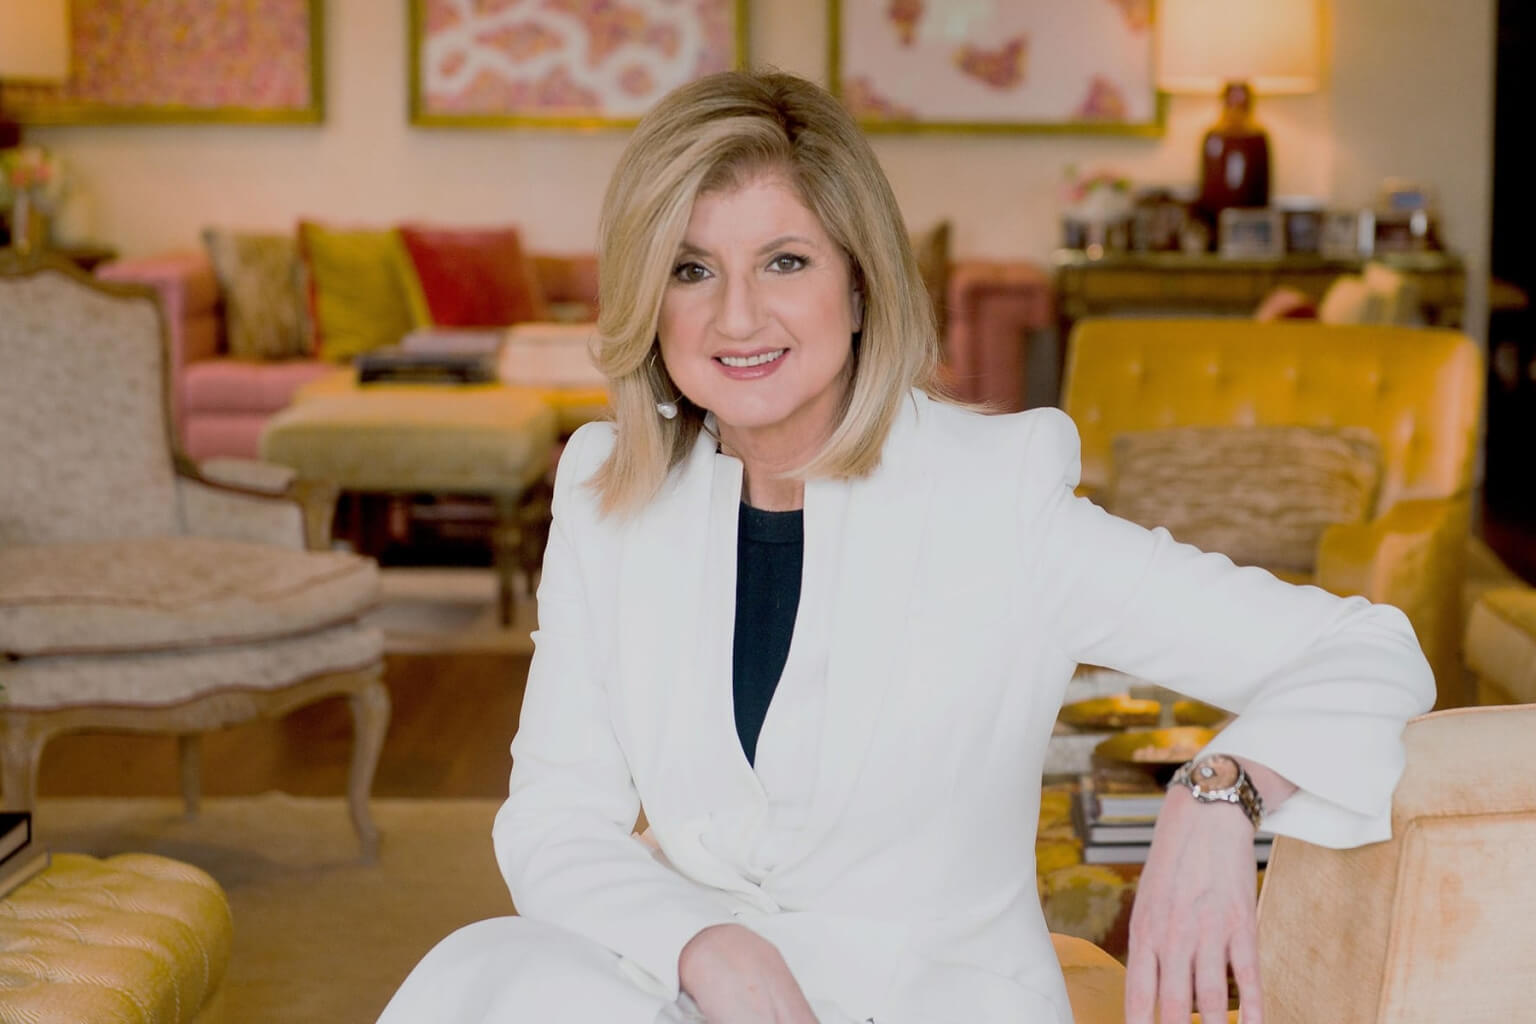 Habits and Routines of Entrepreneur and Author Arianna Huffington